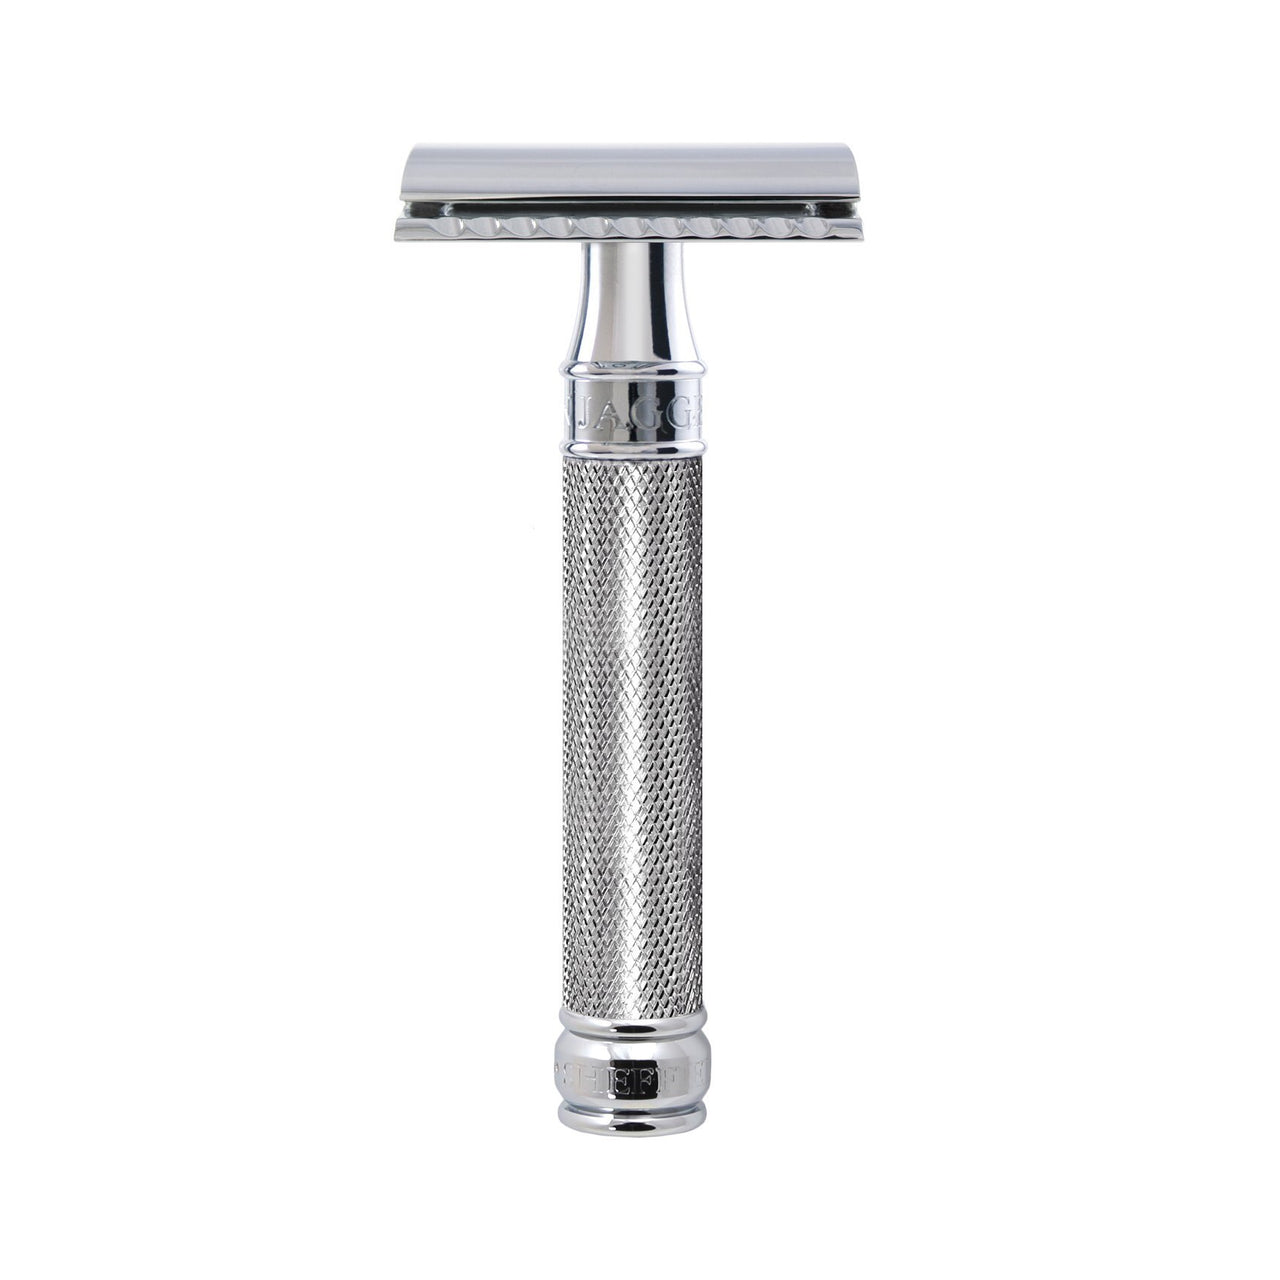 Edwin Jagger Double Edge safety razor- Multiple Styles